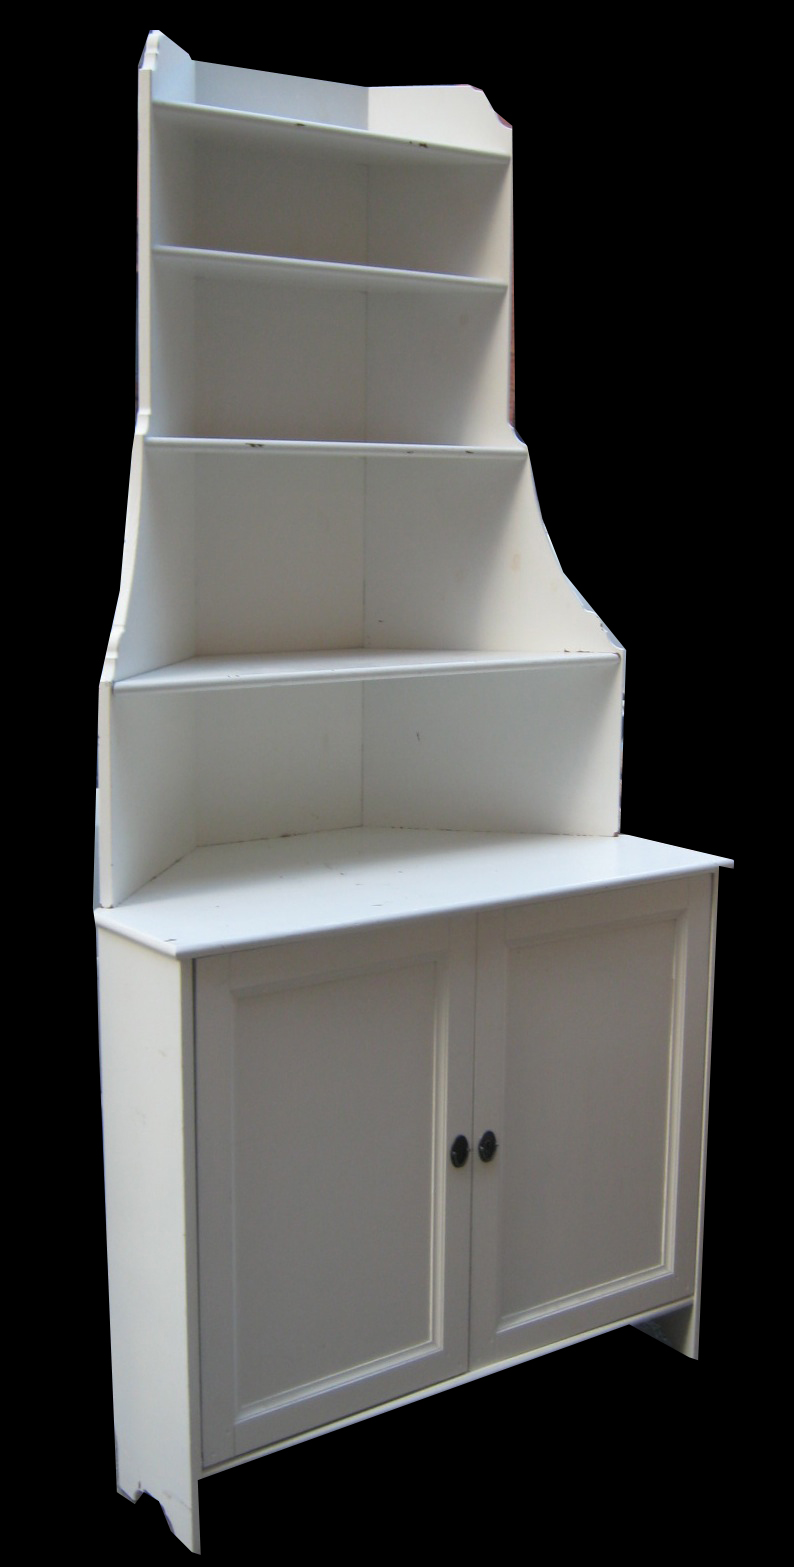 uhuru furniture collectibles ikea corner shelving unit